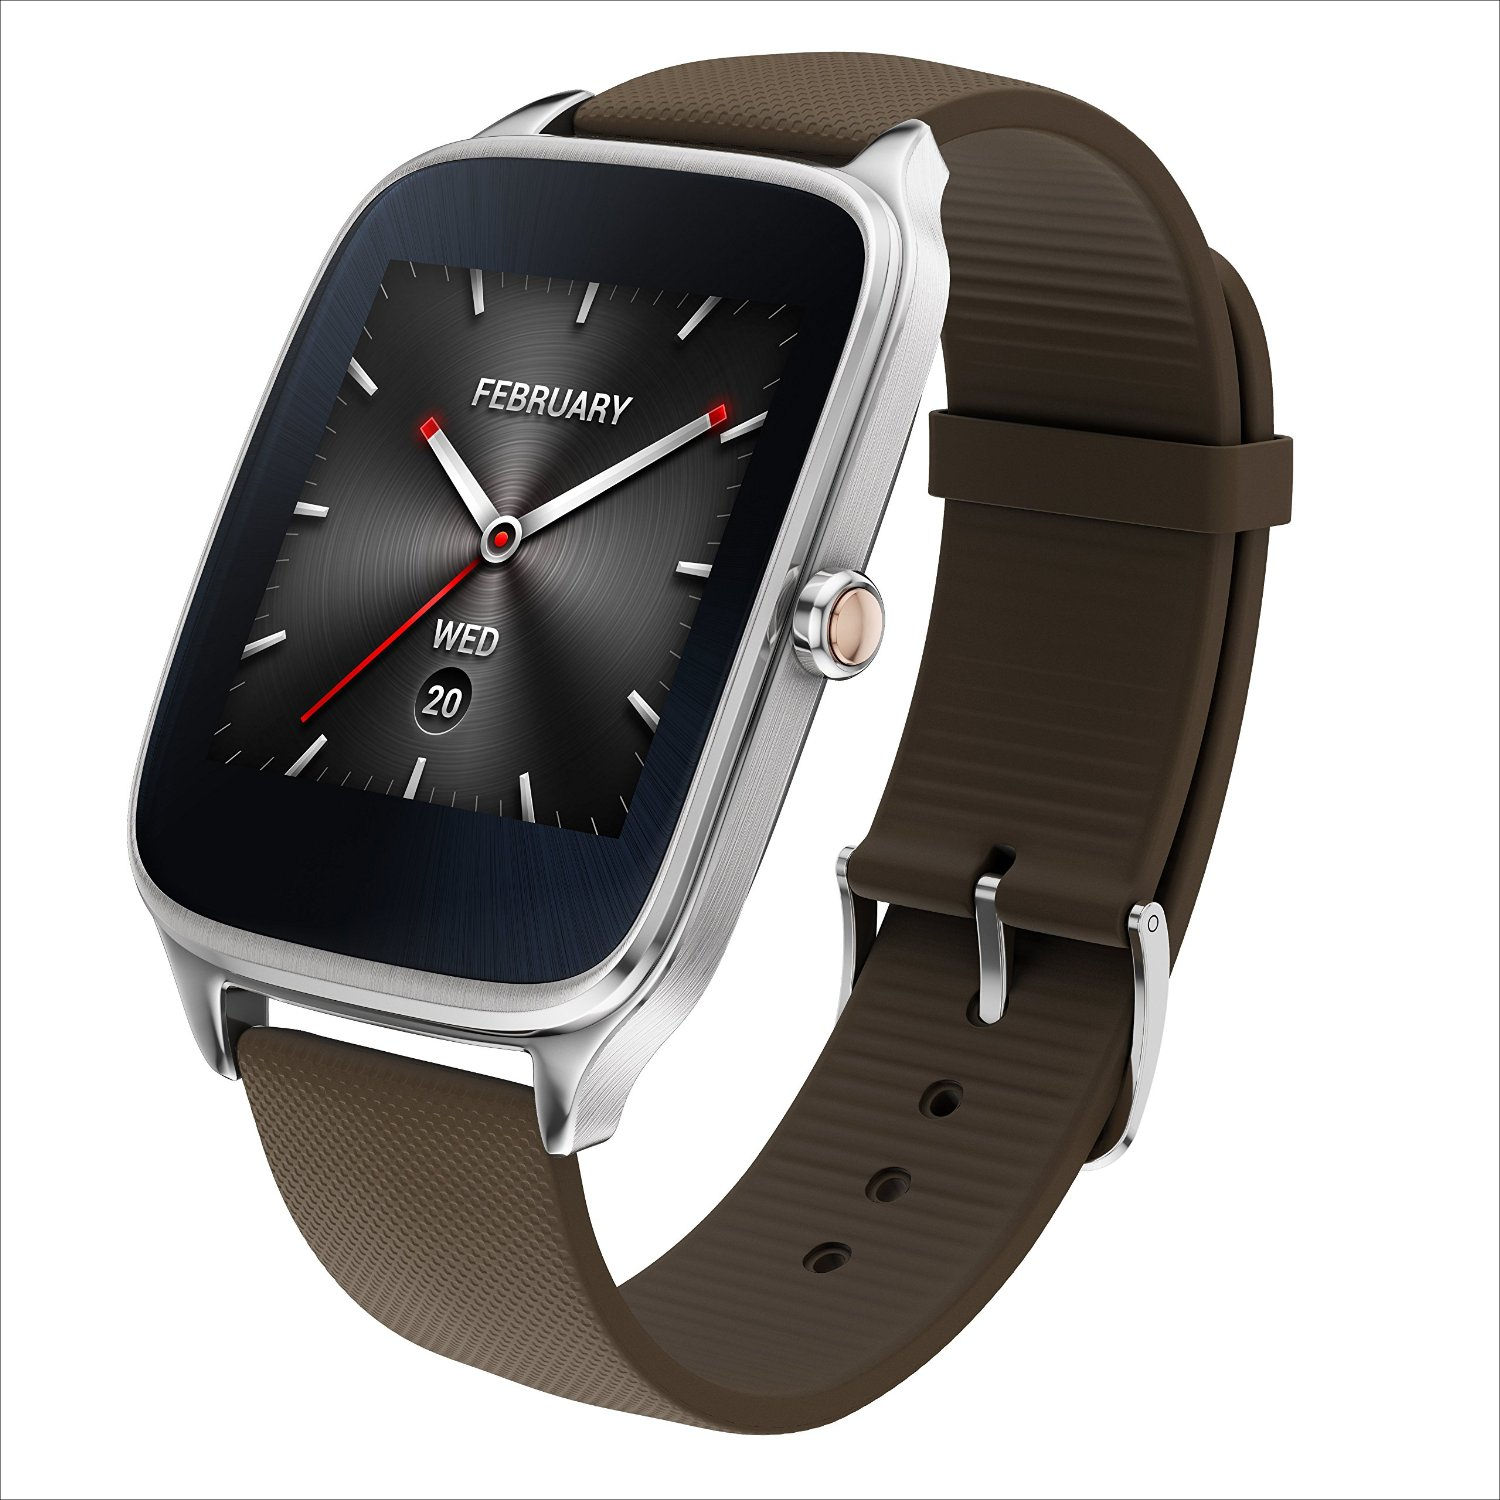 Asus Zen Smart Watch.